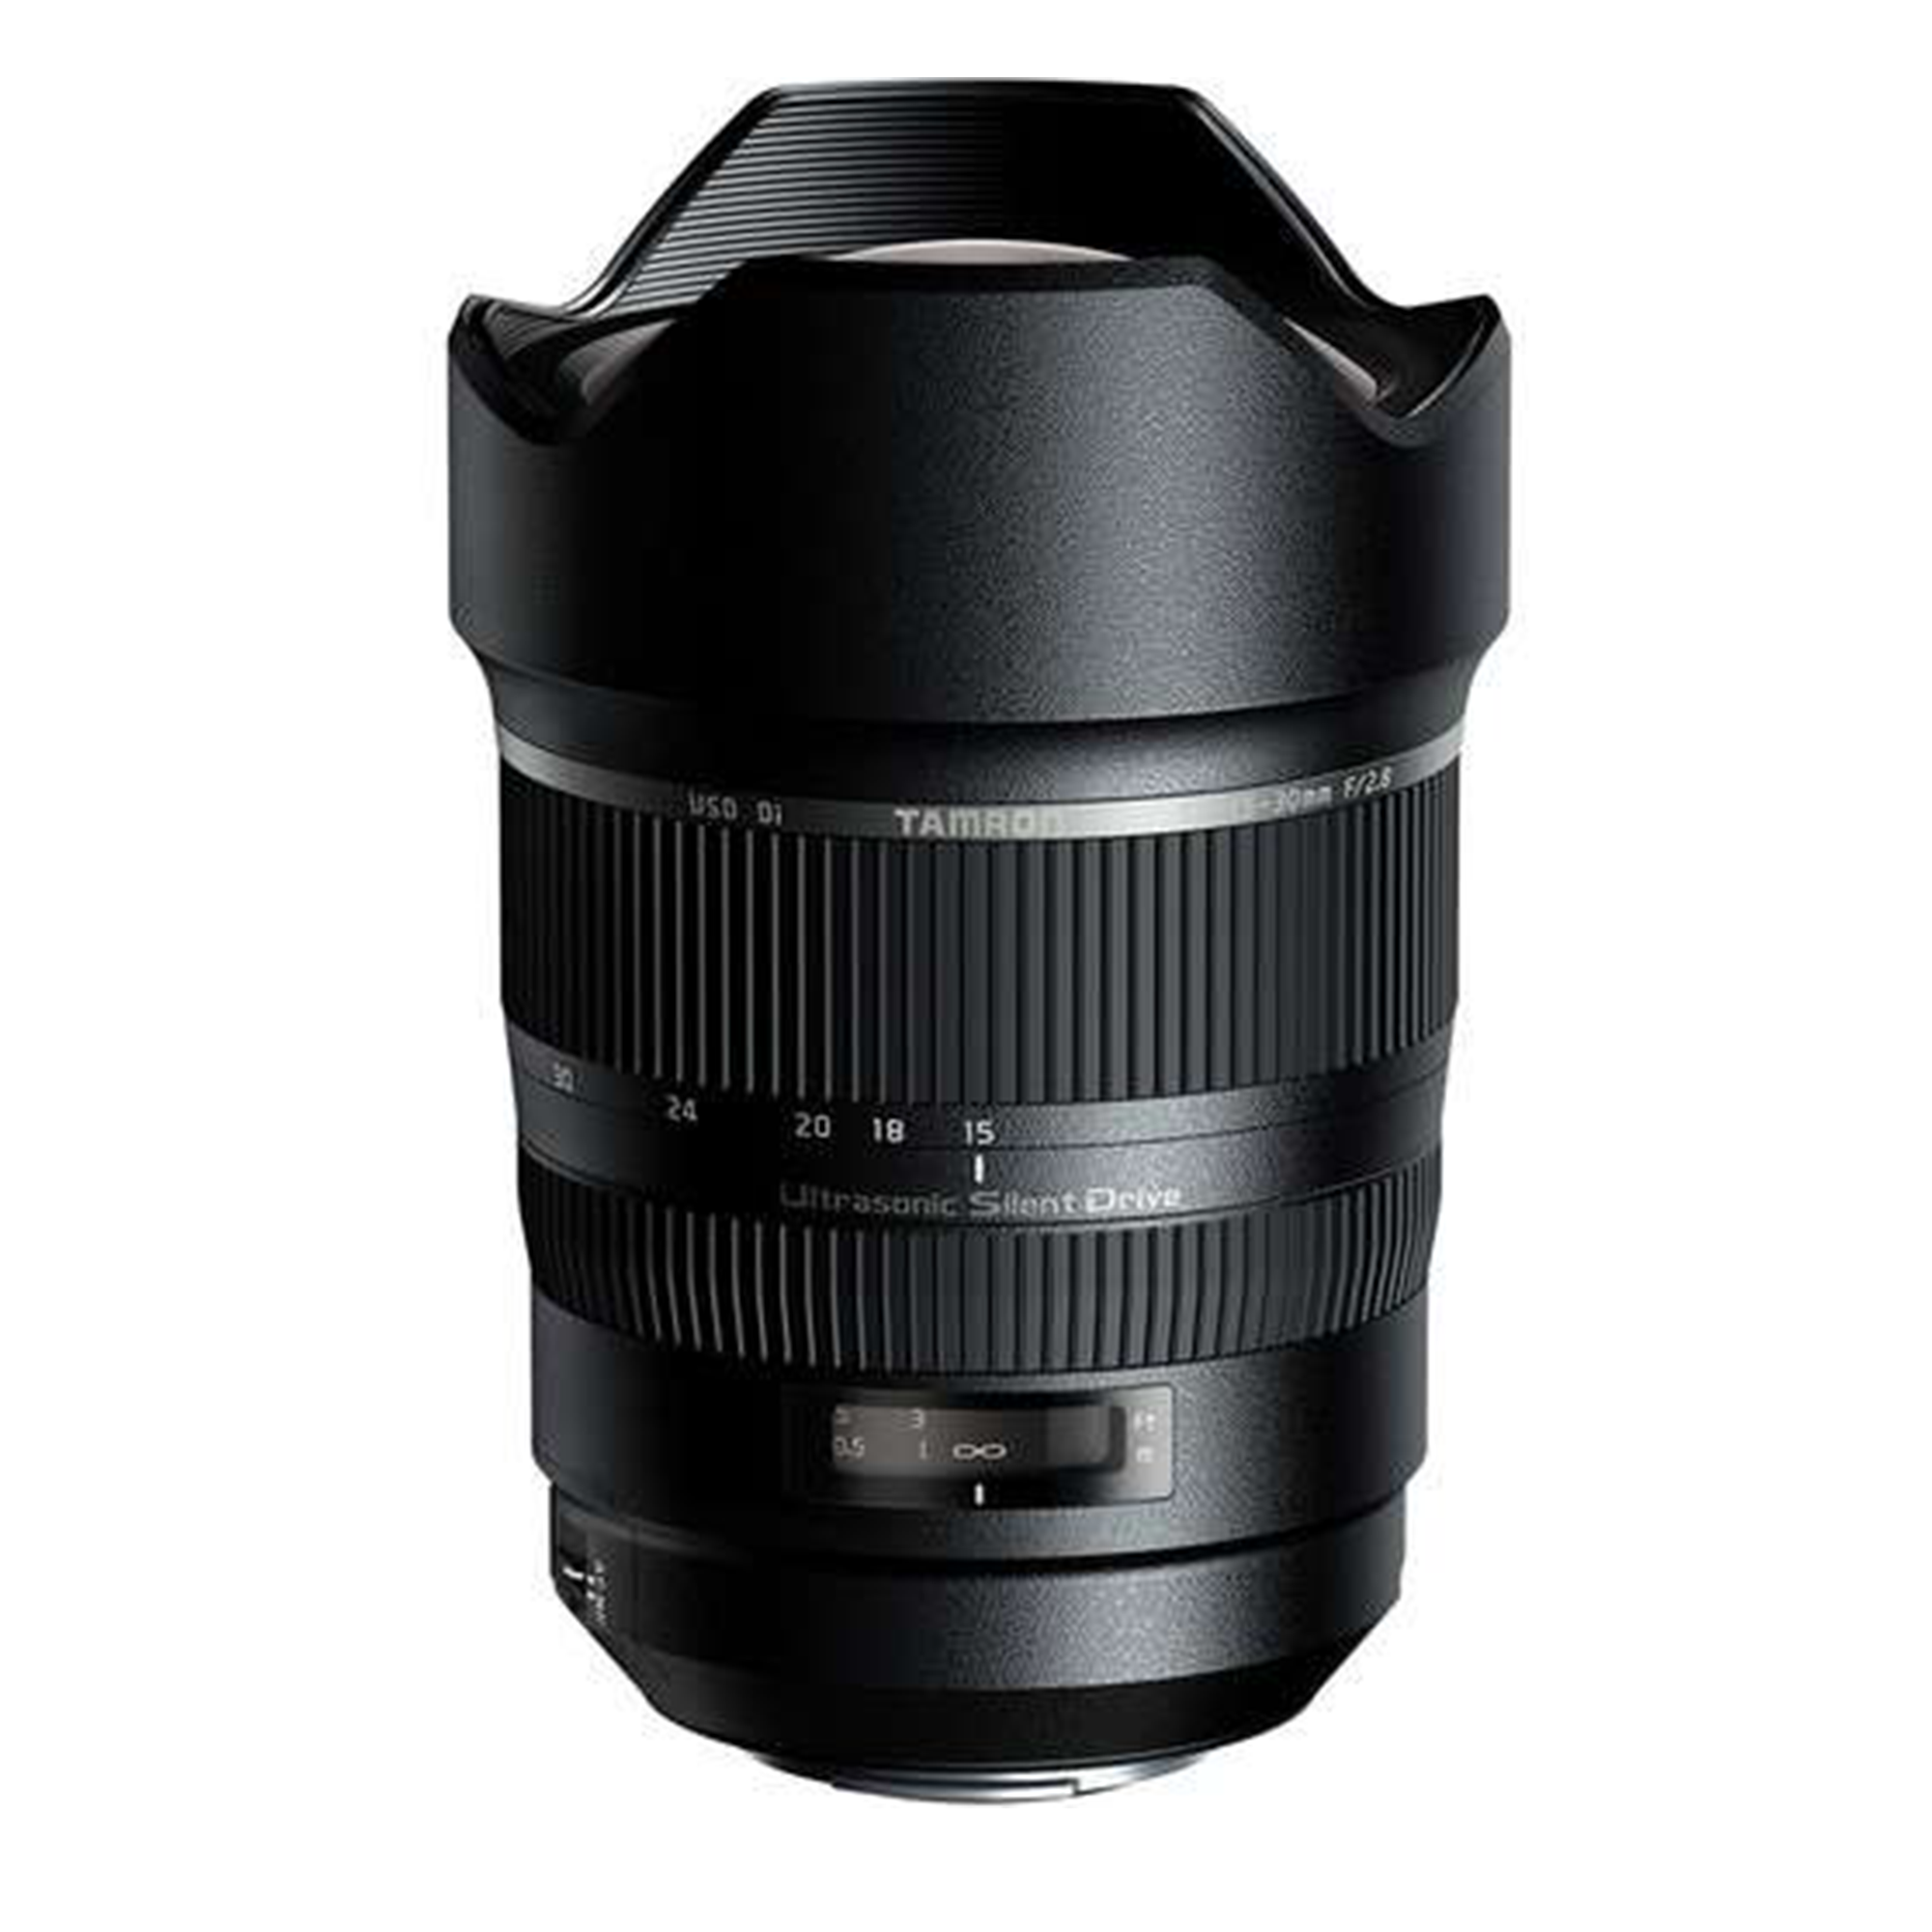 Tamron SP 15-30mm f / 2.8 Di VC USD Lens for Nikon